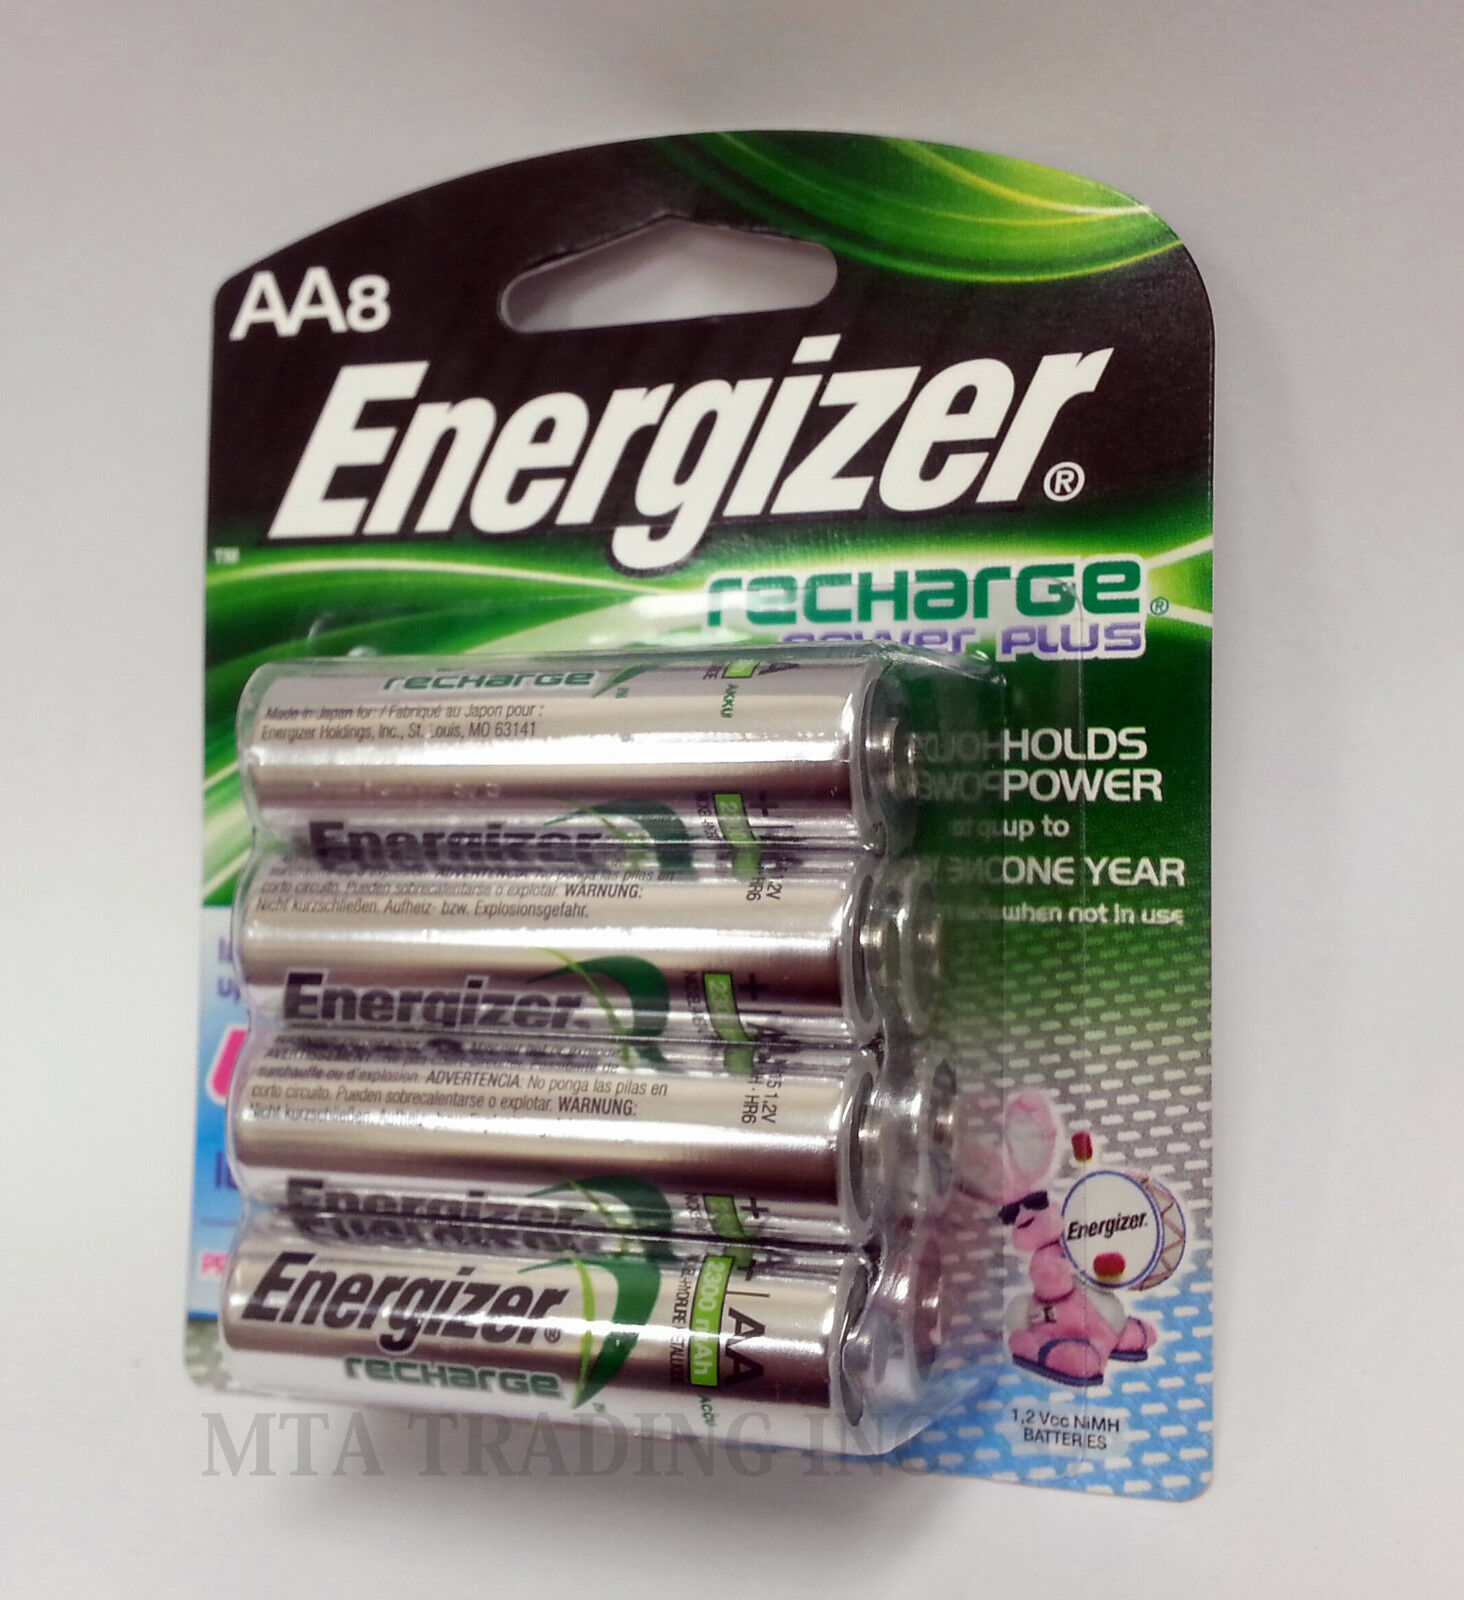 Energizer Recharge Rechargeable AA Battery 2300mAh NiMH 8 pa